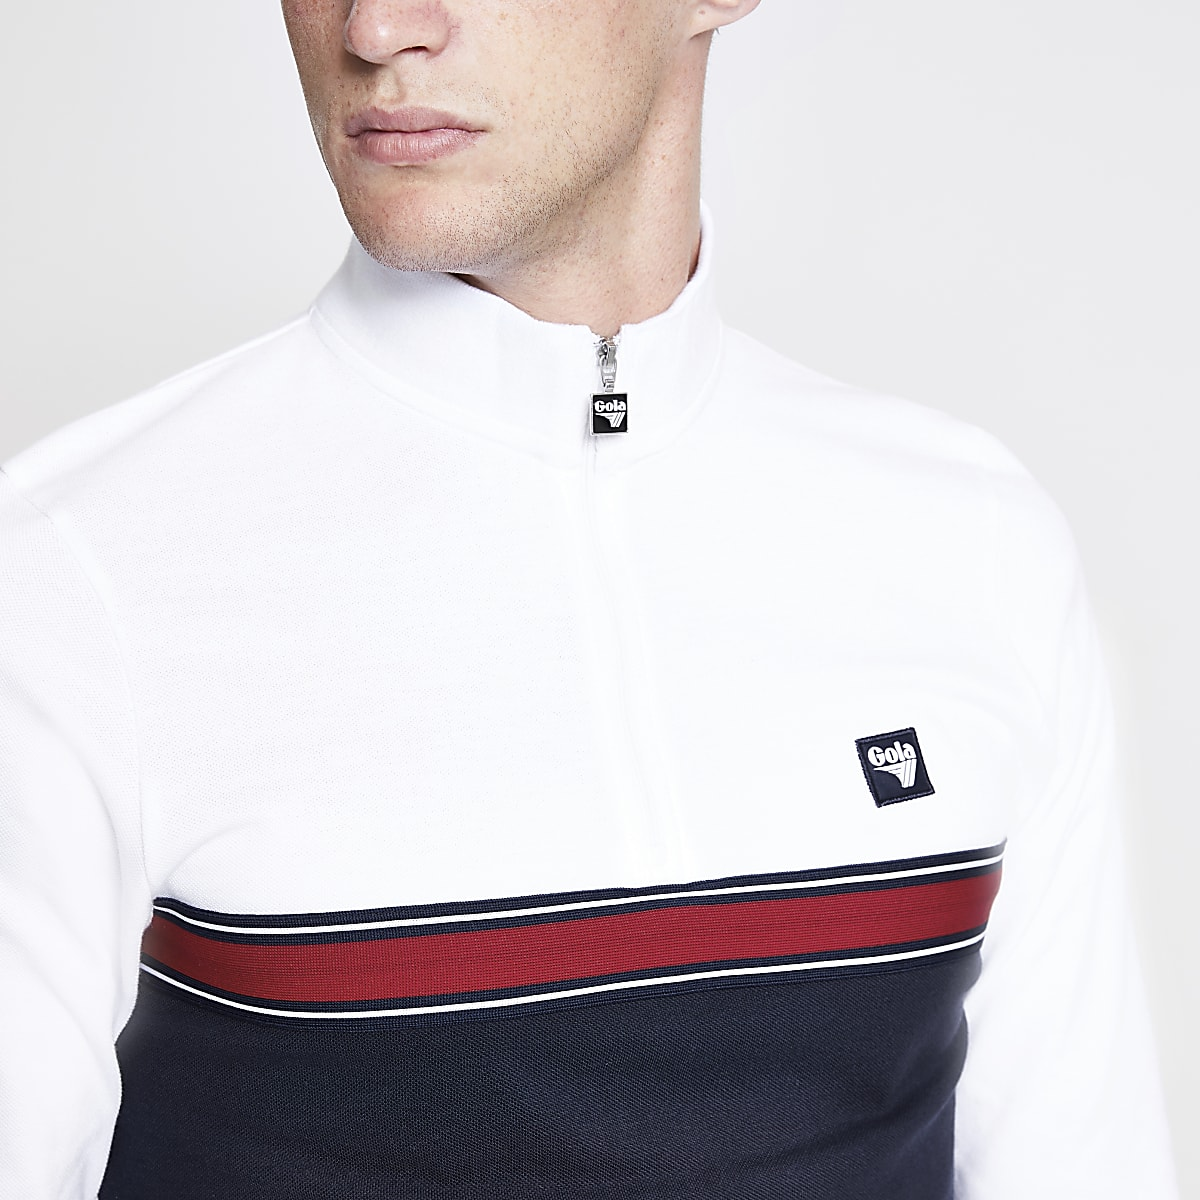 Gola white zip neck racer top